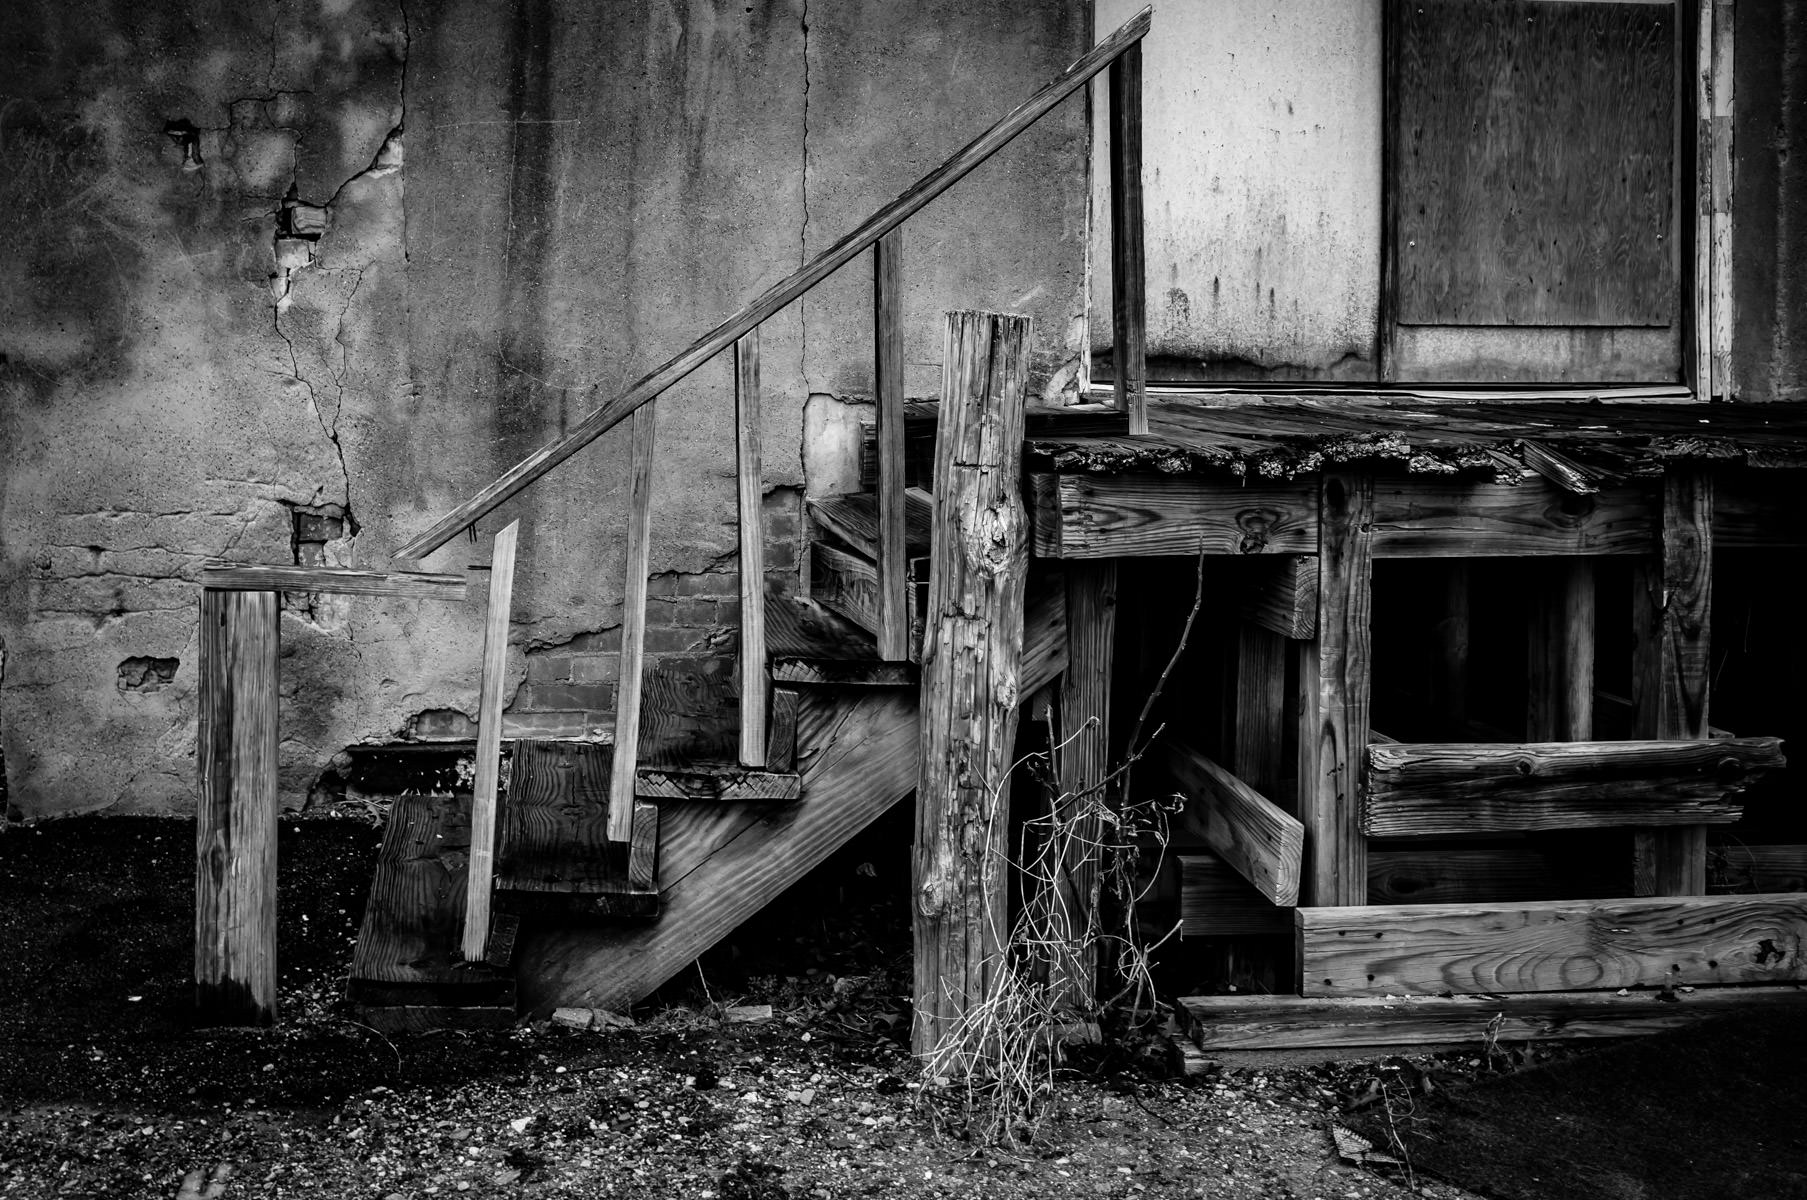 A weathered and worn staircase found in Downtown McKinney, Texas.